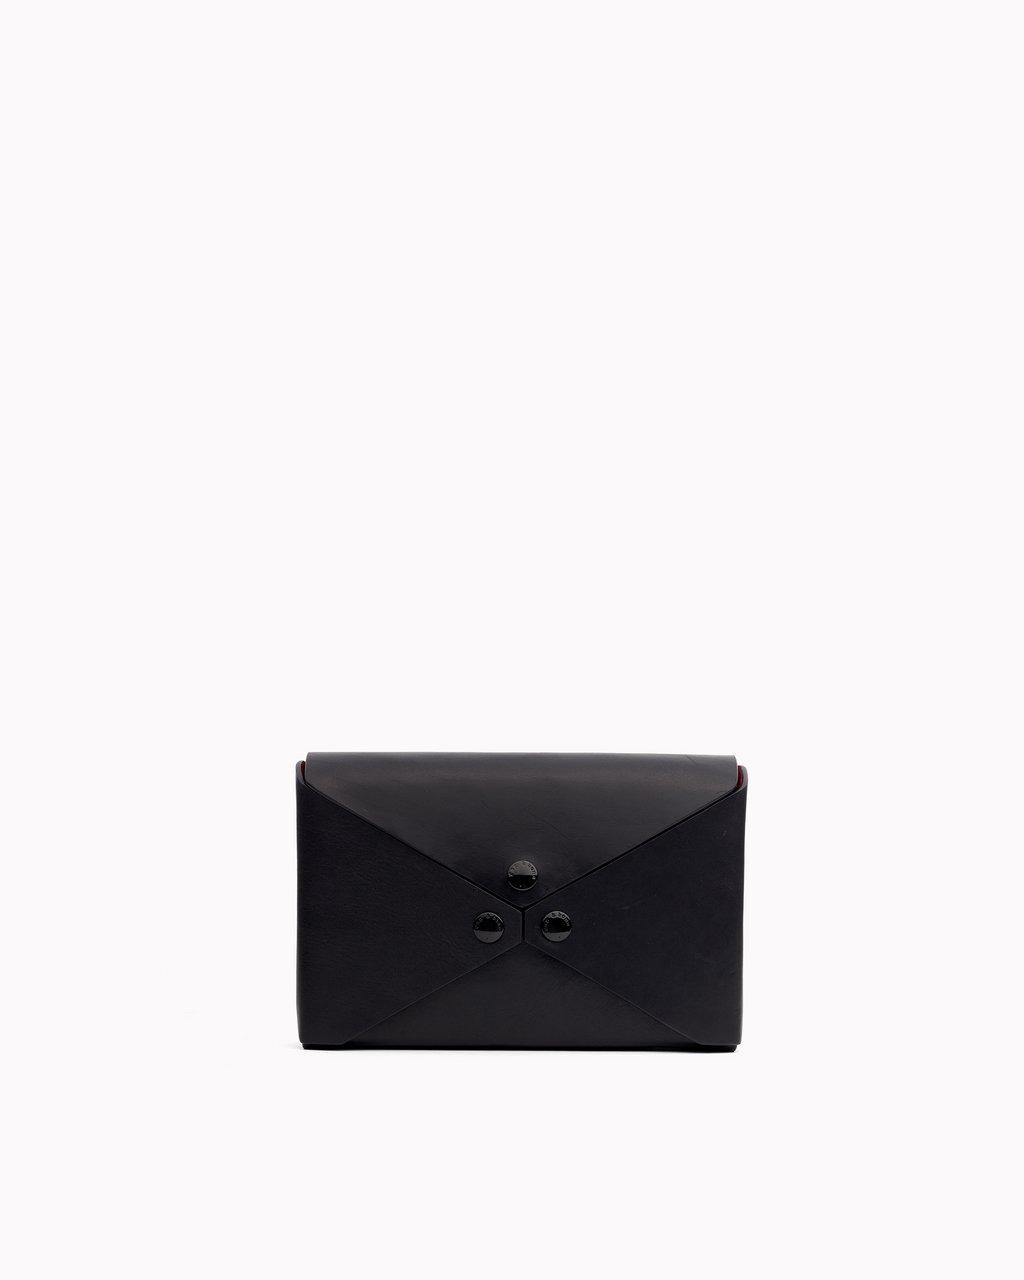 ATLAS CLUTCH BAG